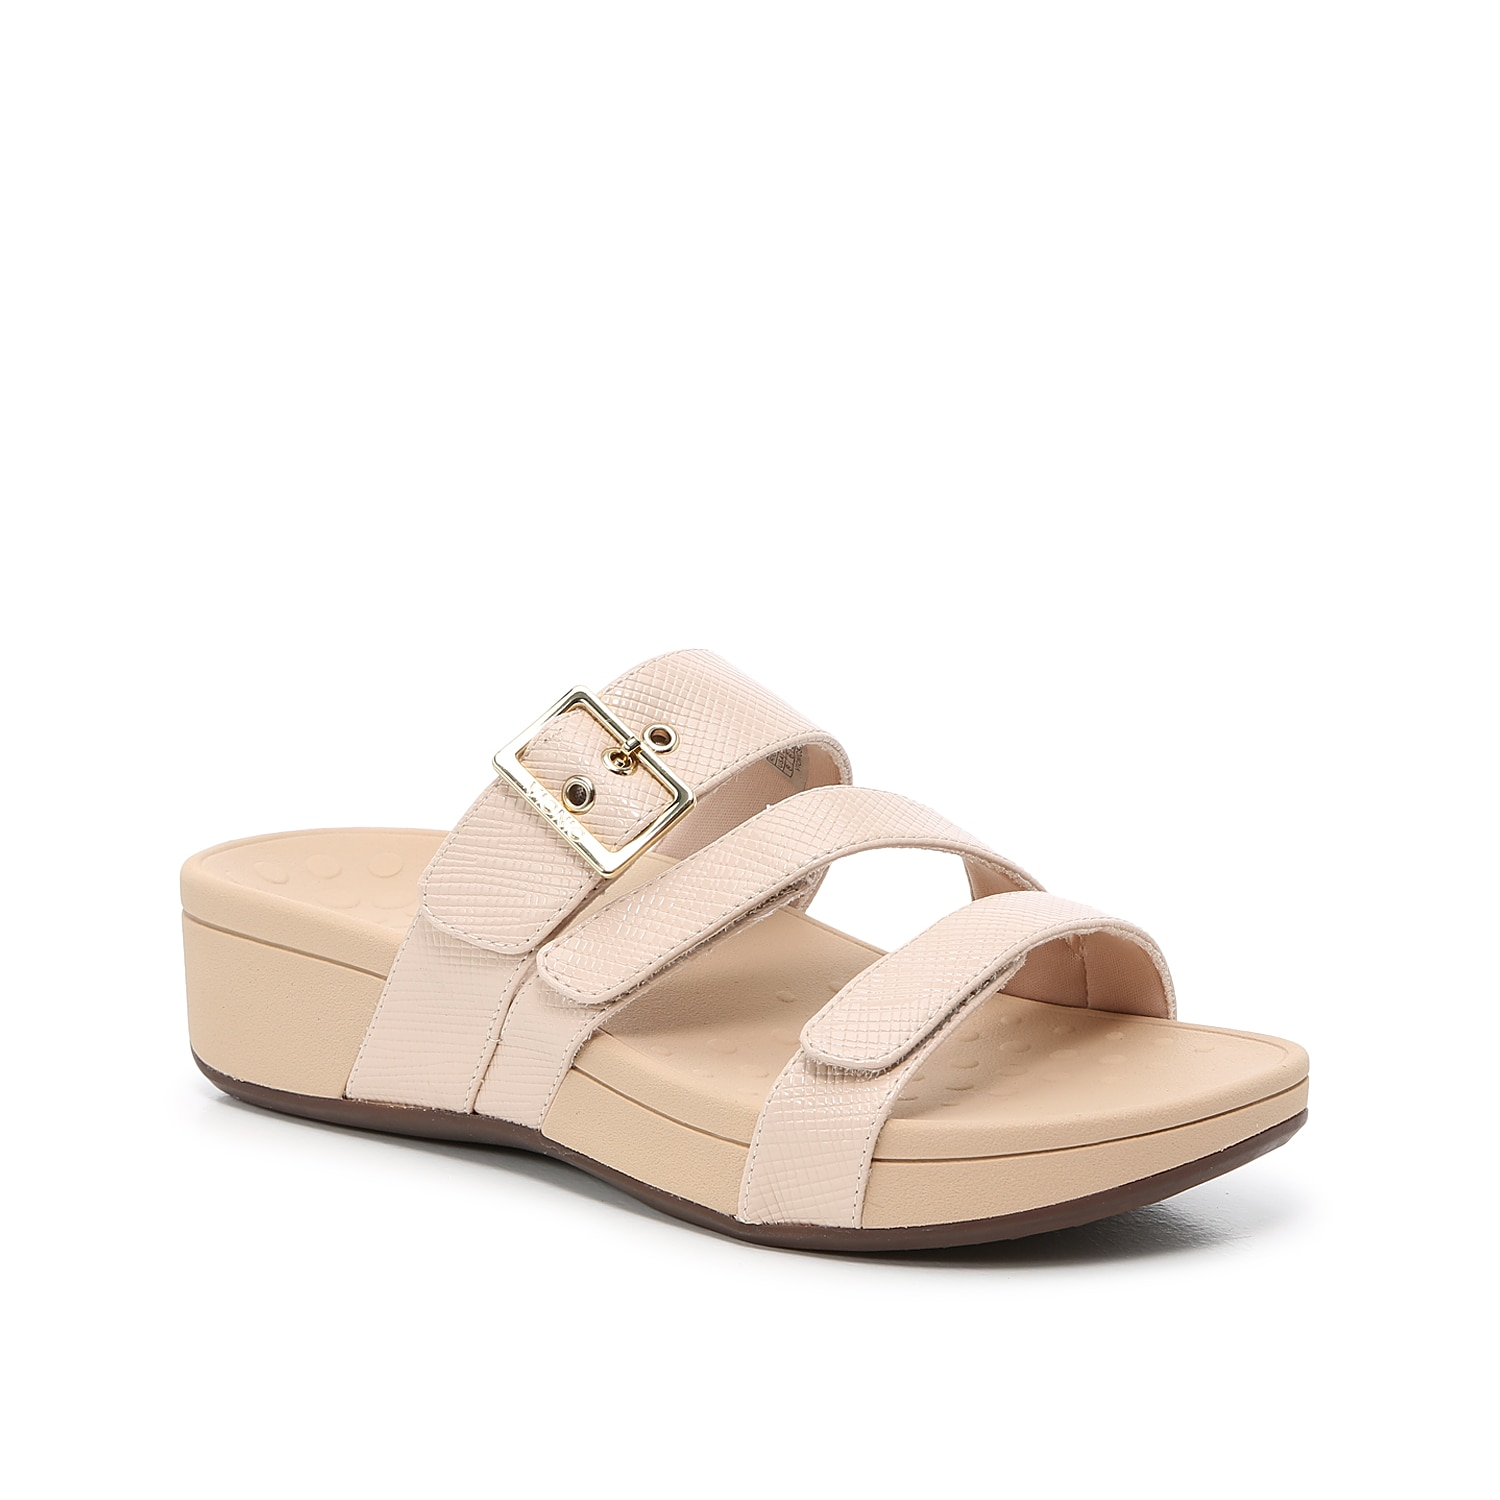 Add pep to every step with the Rio sandals from Vionic. These platforms feature adjustable straps and a molded wedge heel for daylong support.